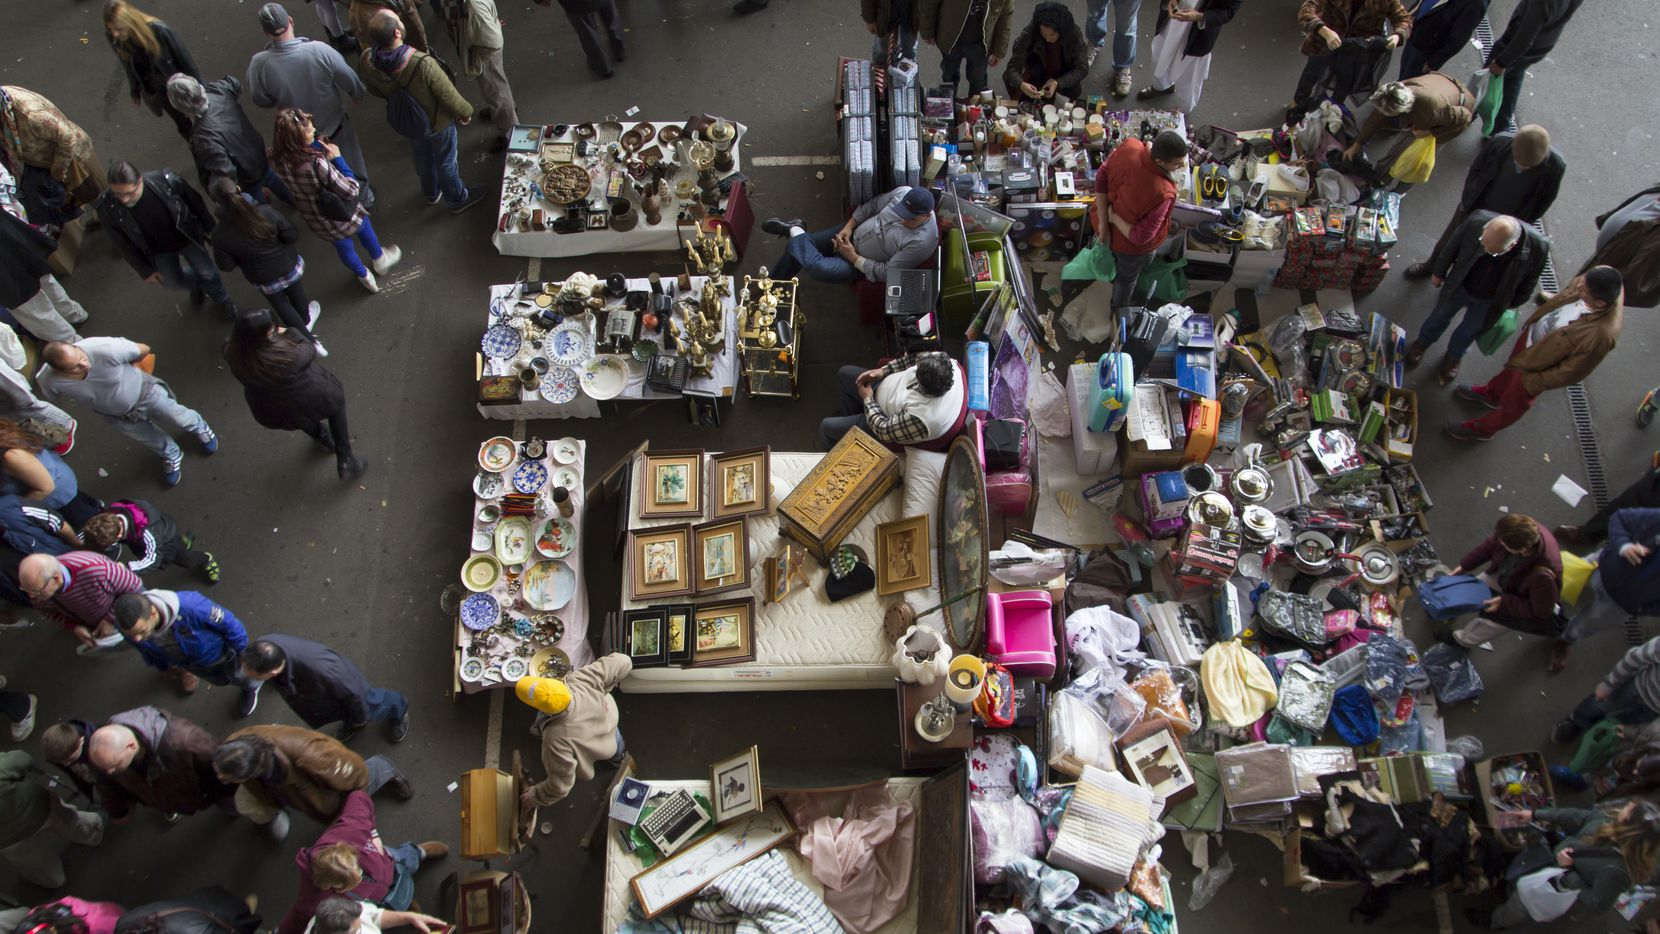 A crowd flocks to a flea market in Barcelona, Spain. (Getty Images)